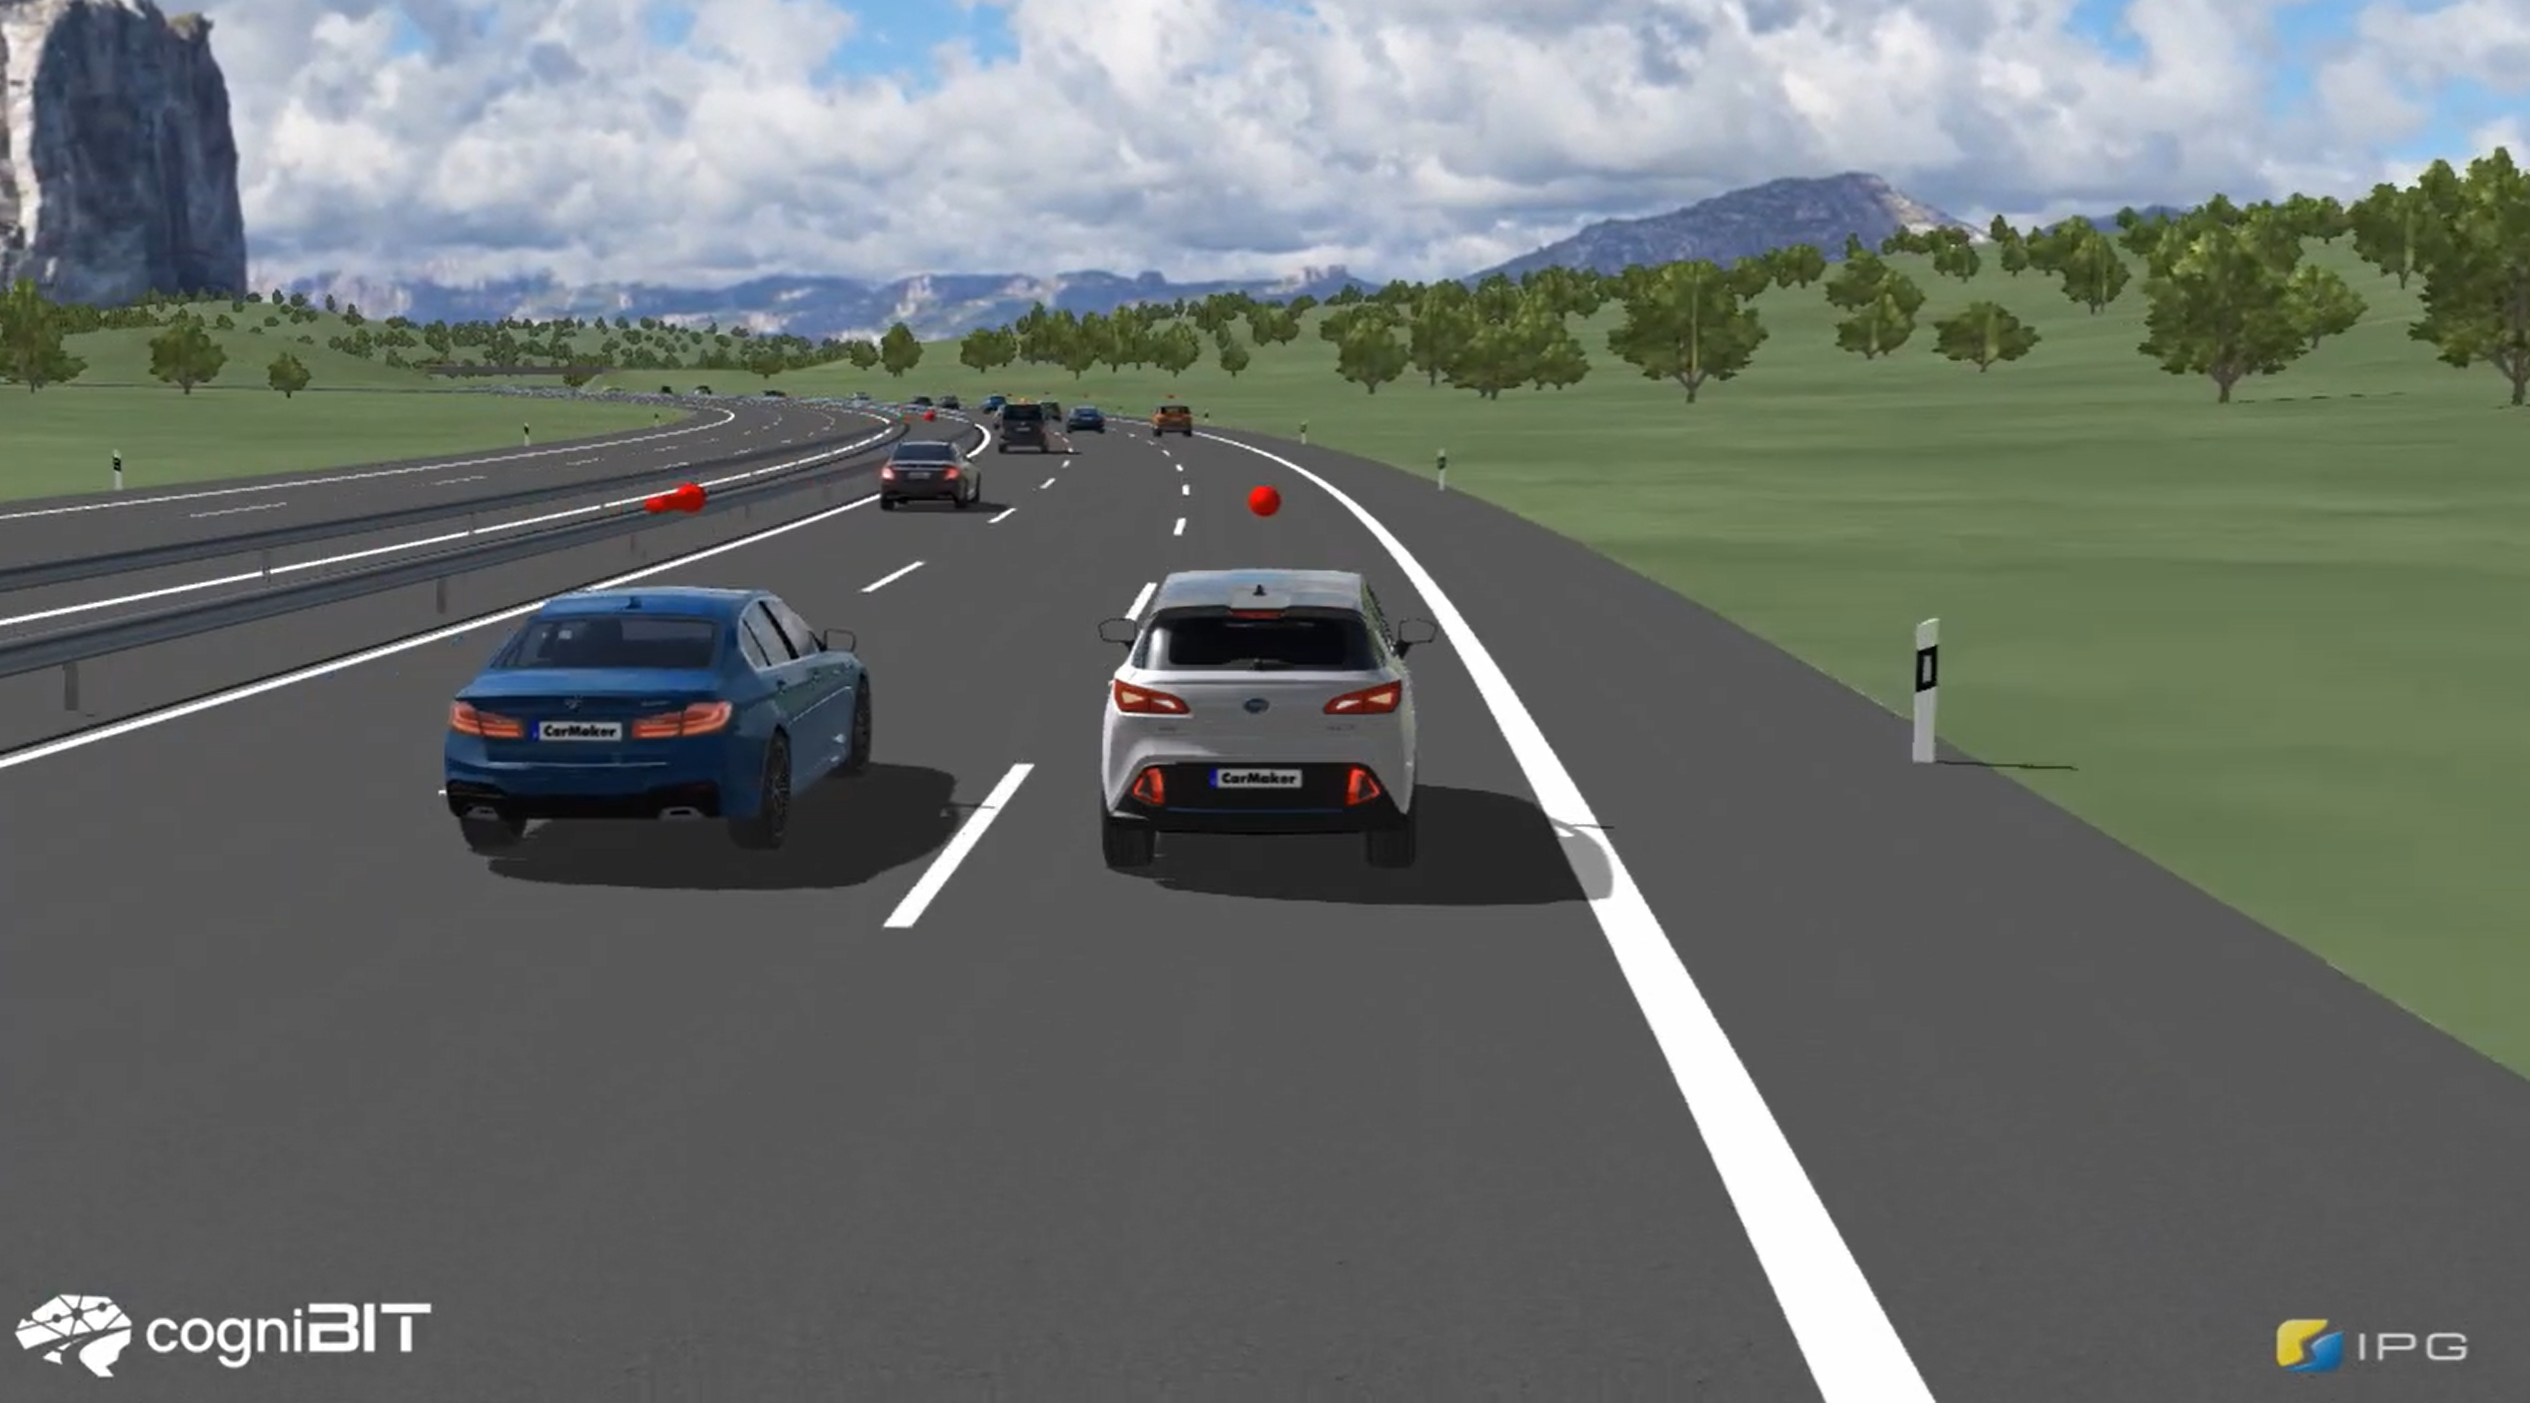 Risky behavior in traffic simulated by cogniBIT